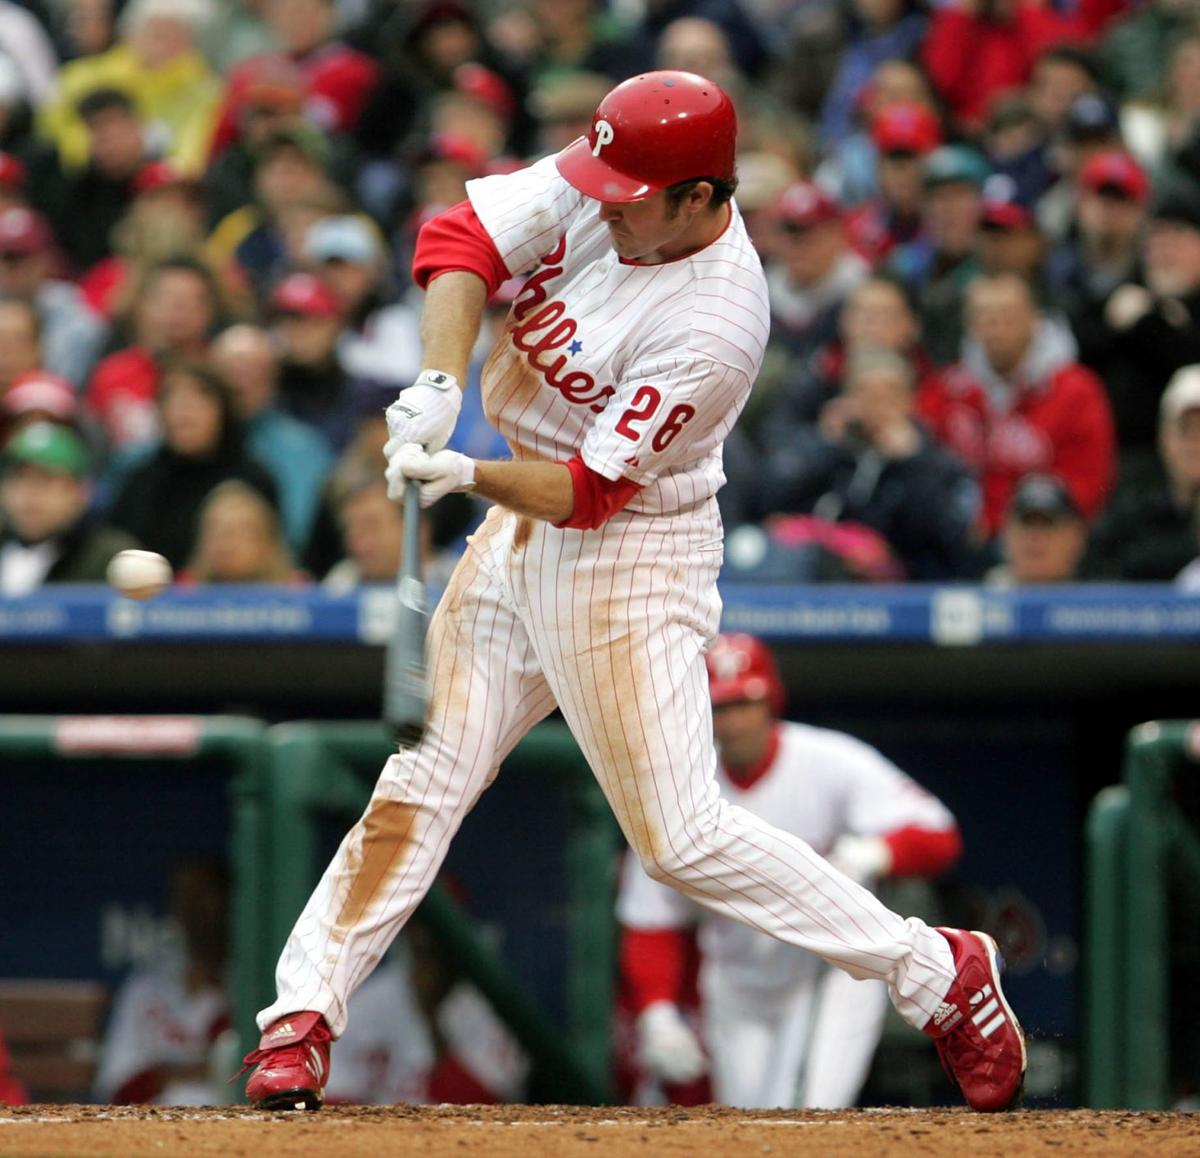 outlet store 2848f f8abb GALLERY: Chase Utley through the years | Photo Galleries ...